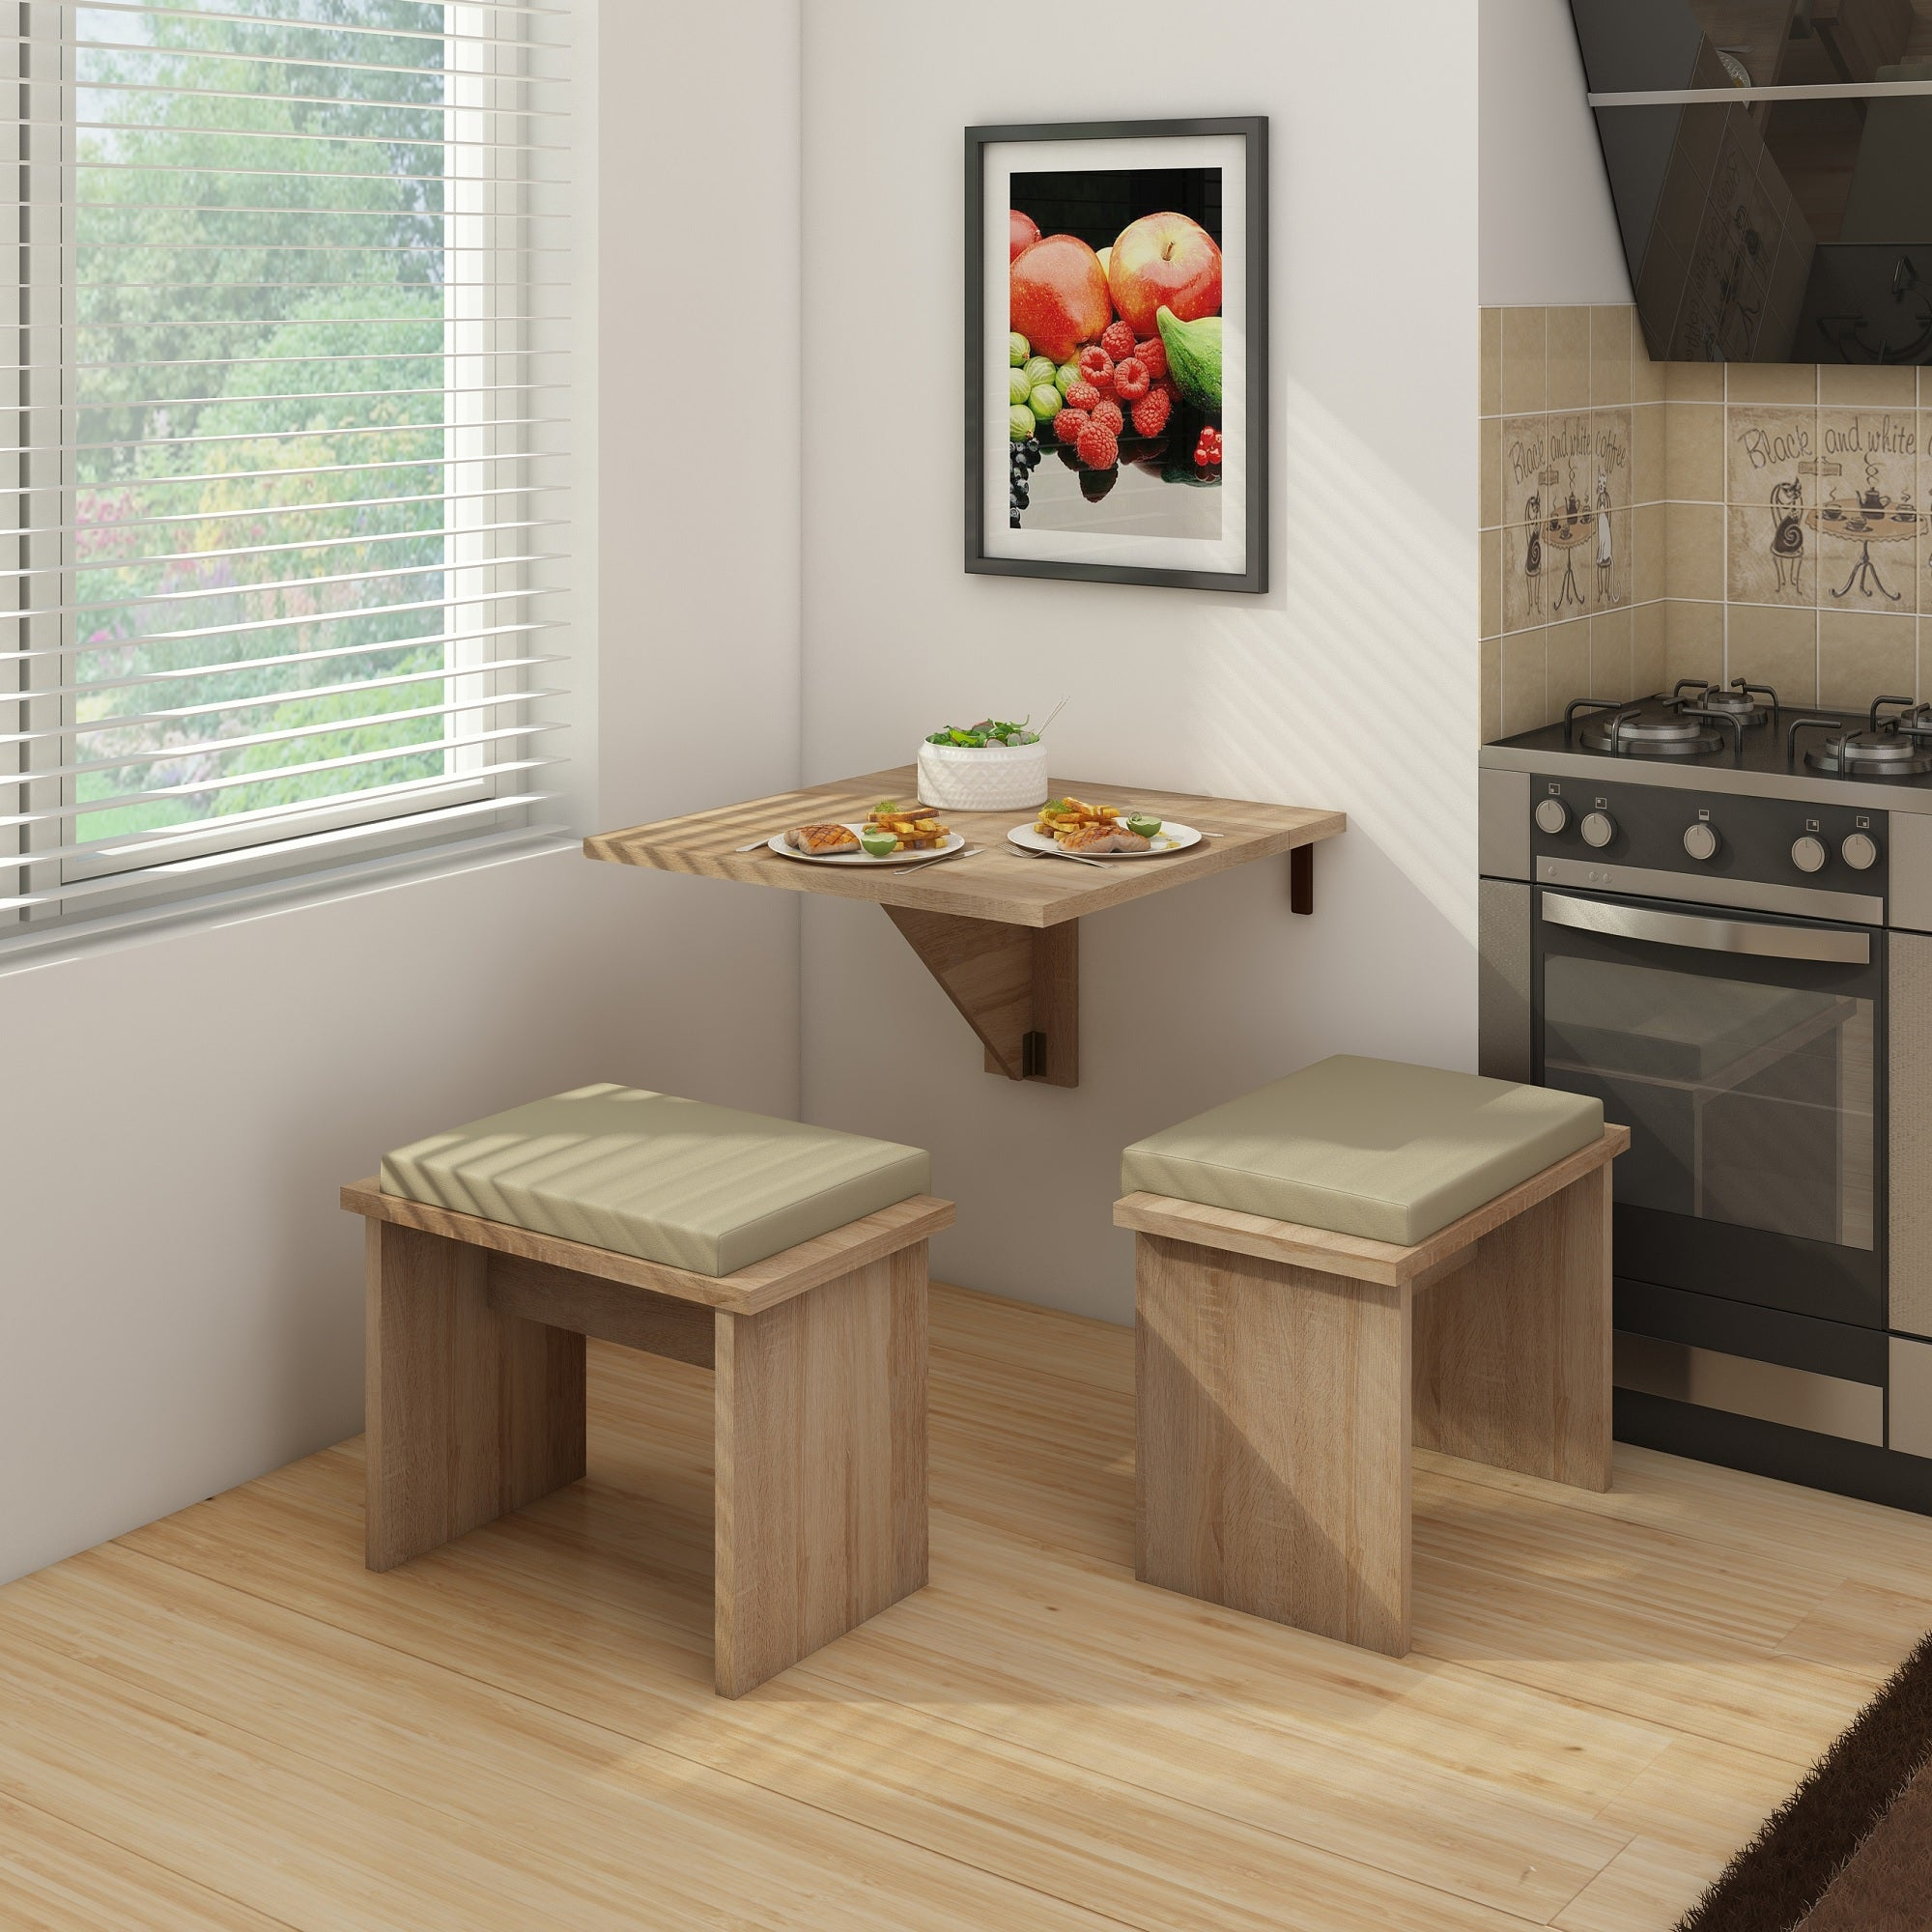 Expert B Wall-Mounted Folding Dining Table